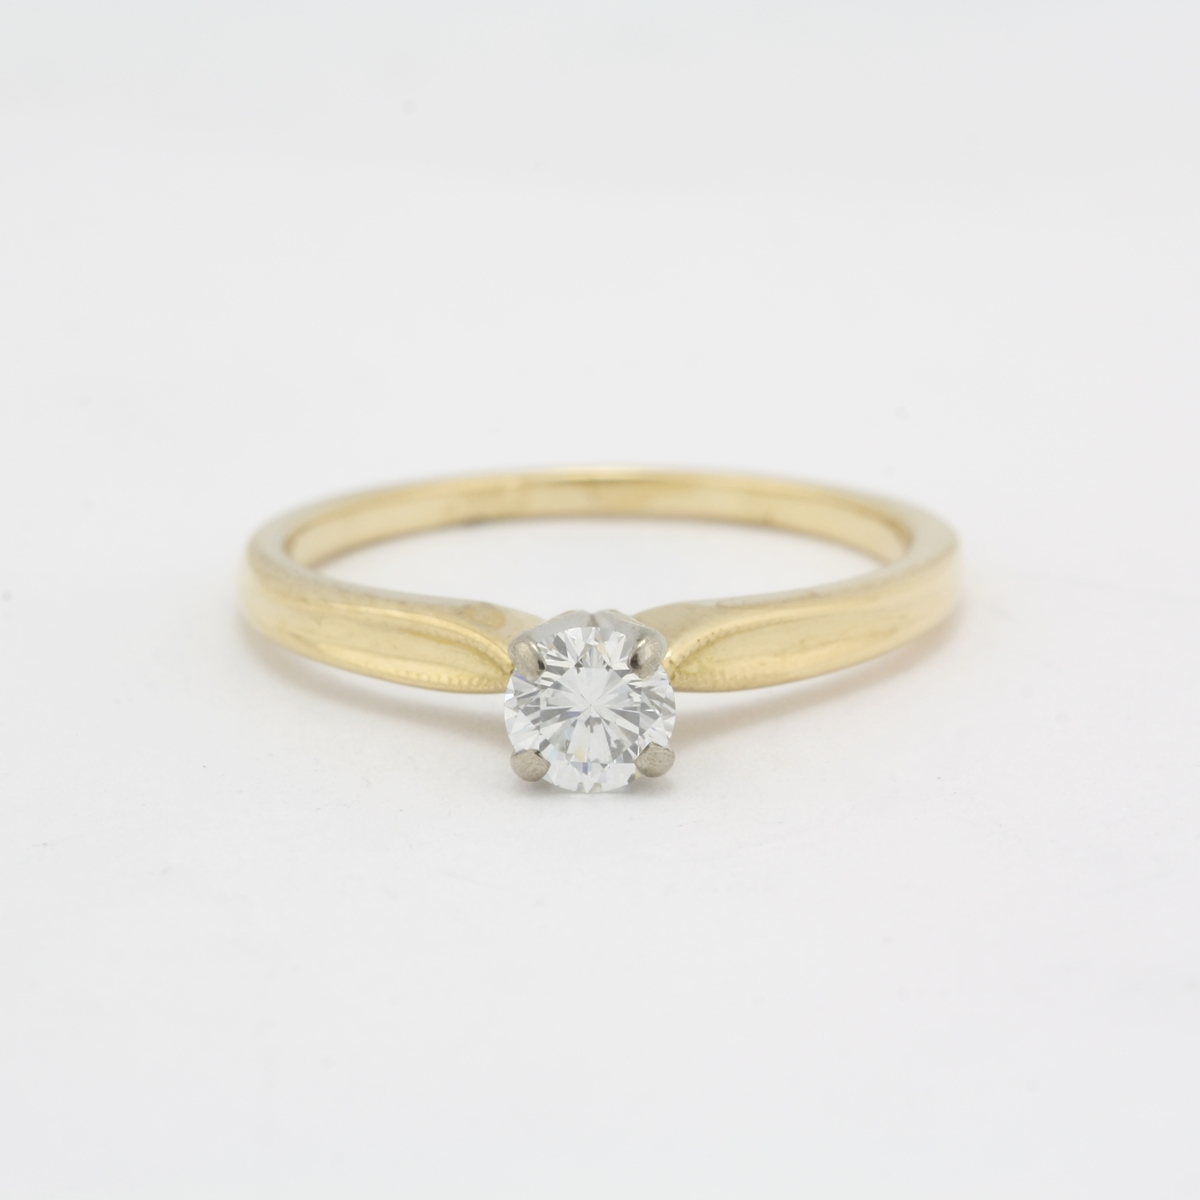 Pre-Owned 18 Karat Diamond Engagement Ring